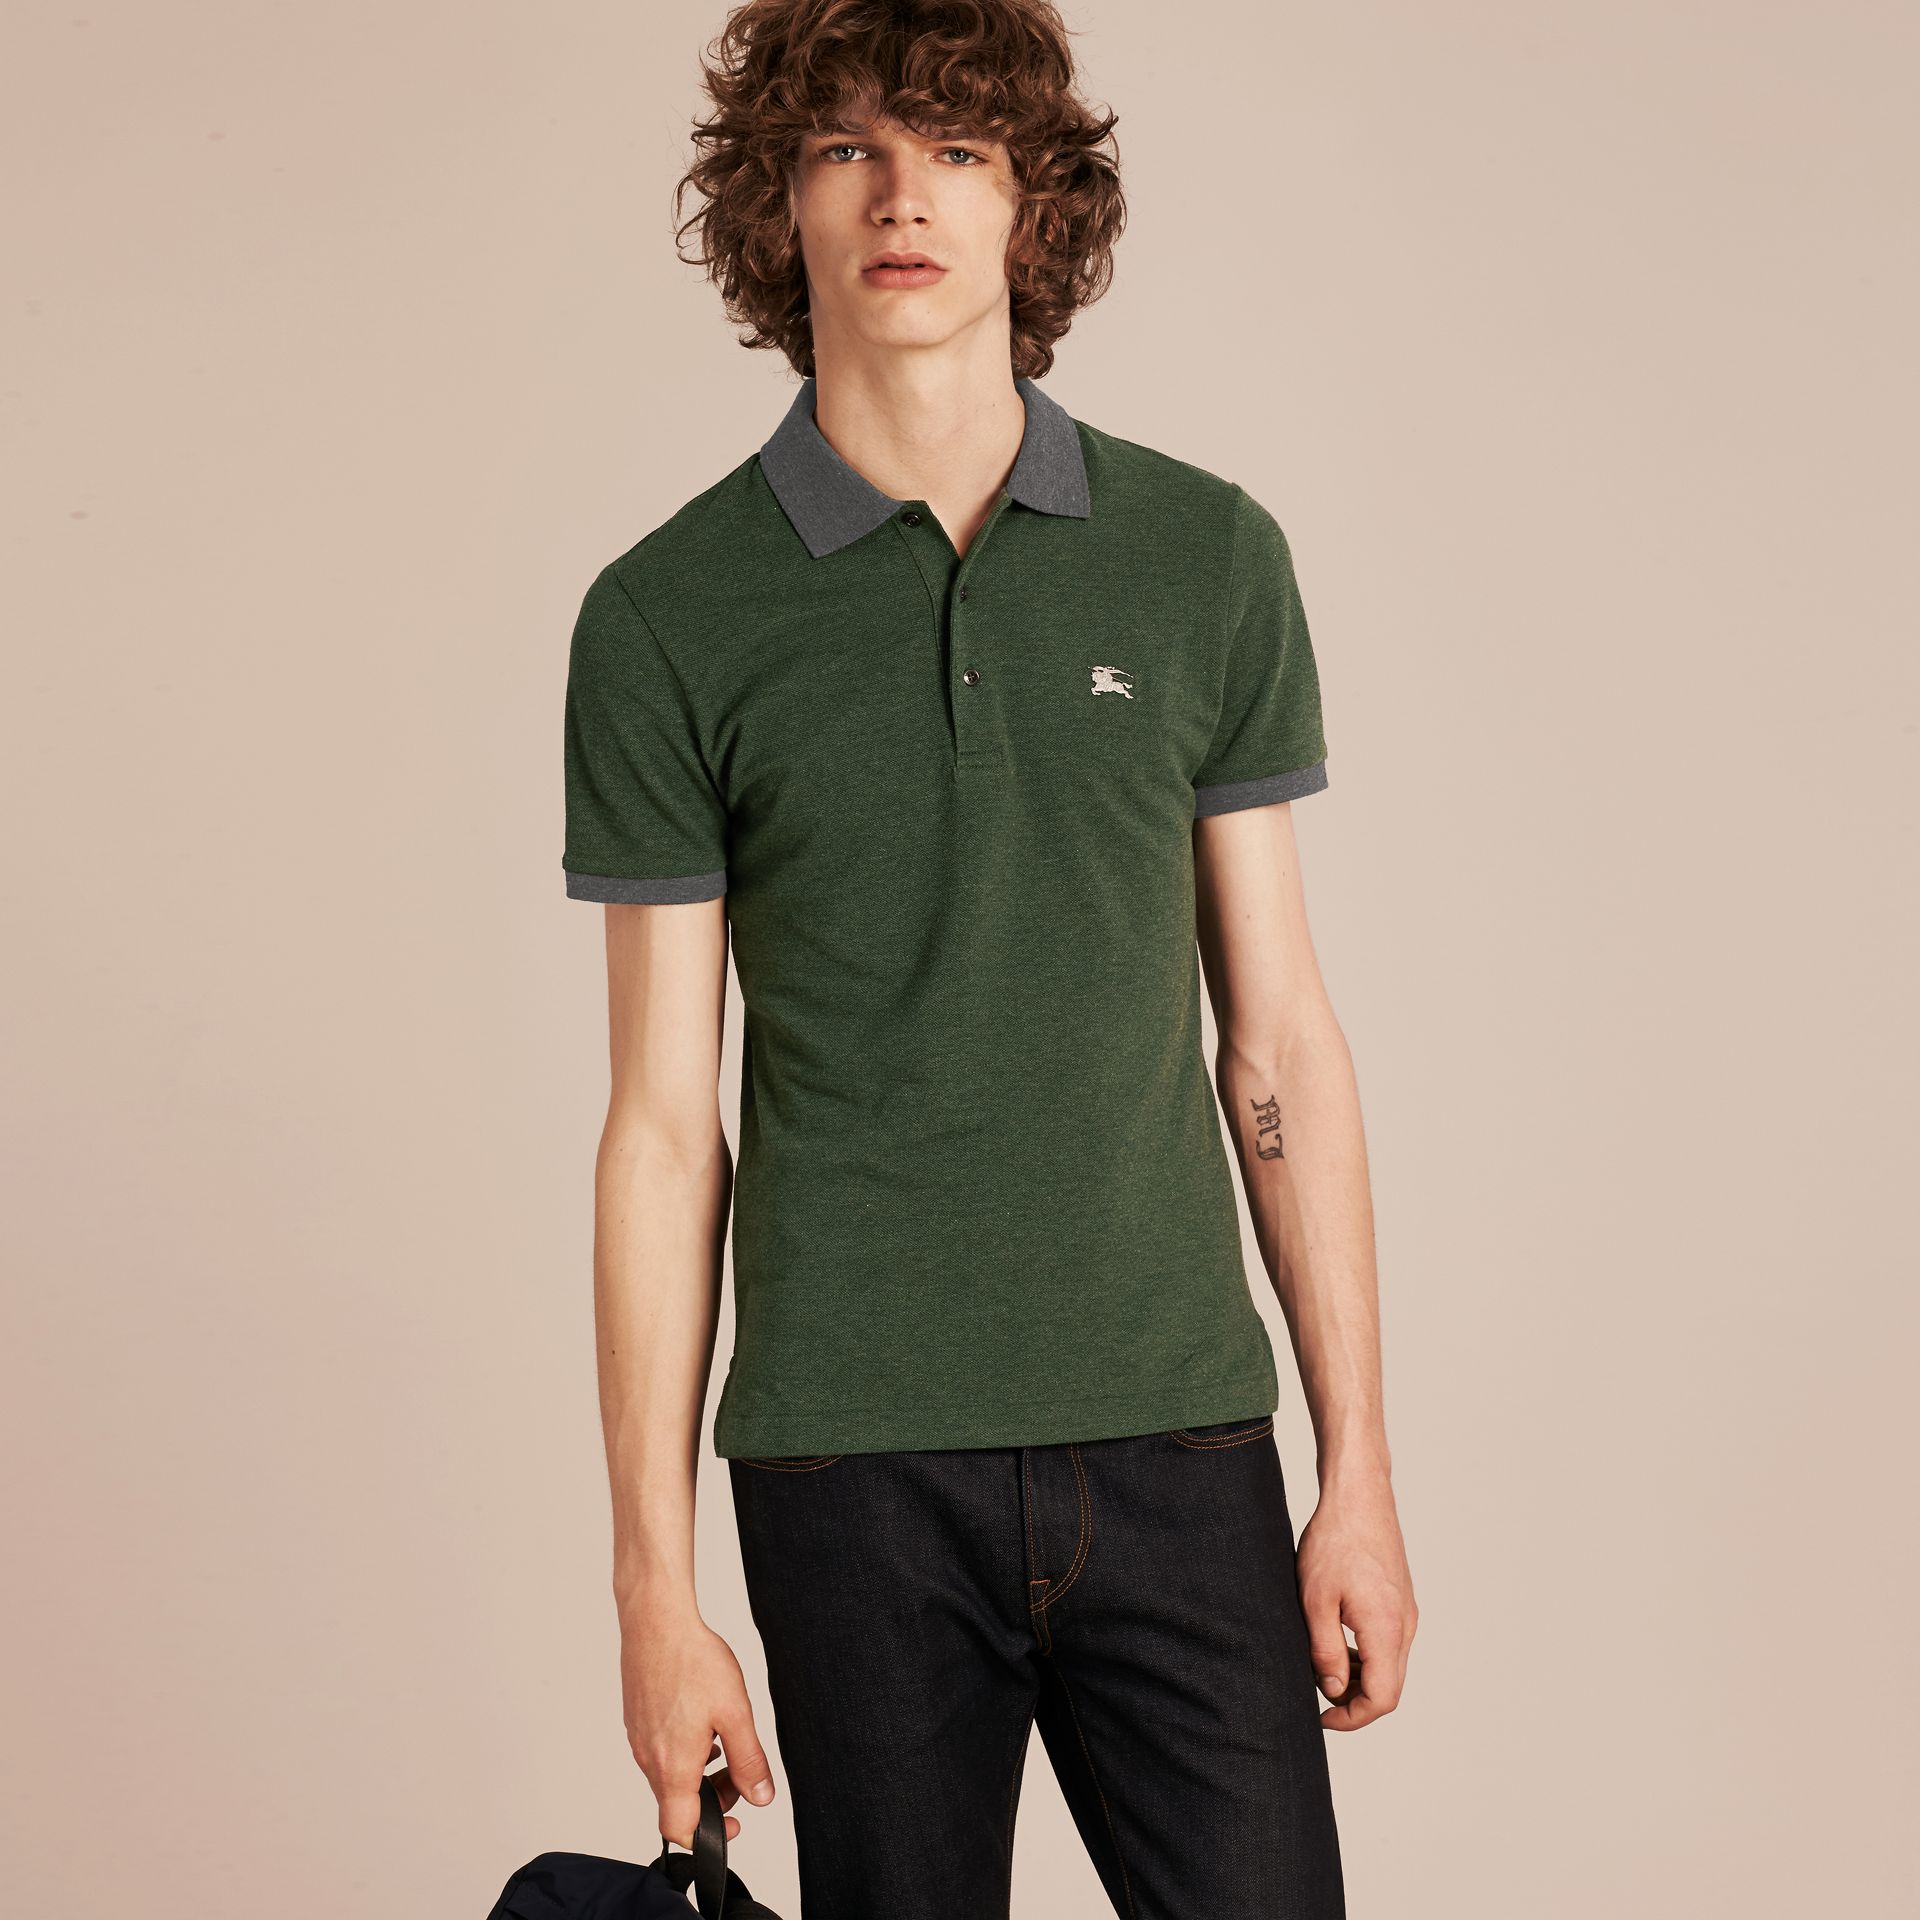 Racing green melange Contrast Colour Detail Cotton Piqué Polo Shirt Racing Green Melange - gallery image 6